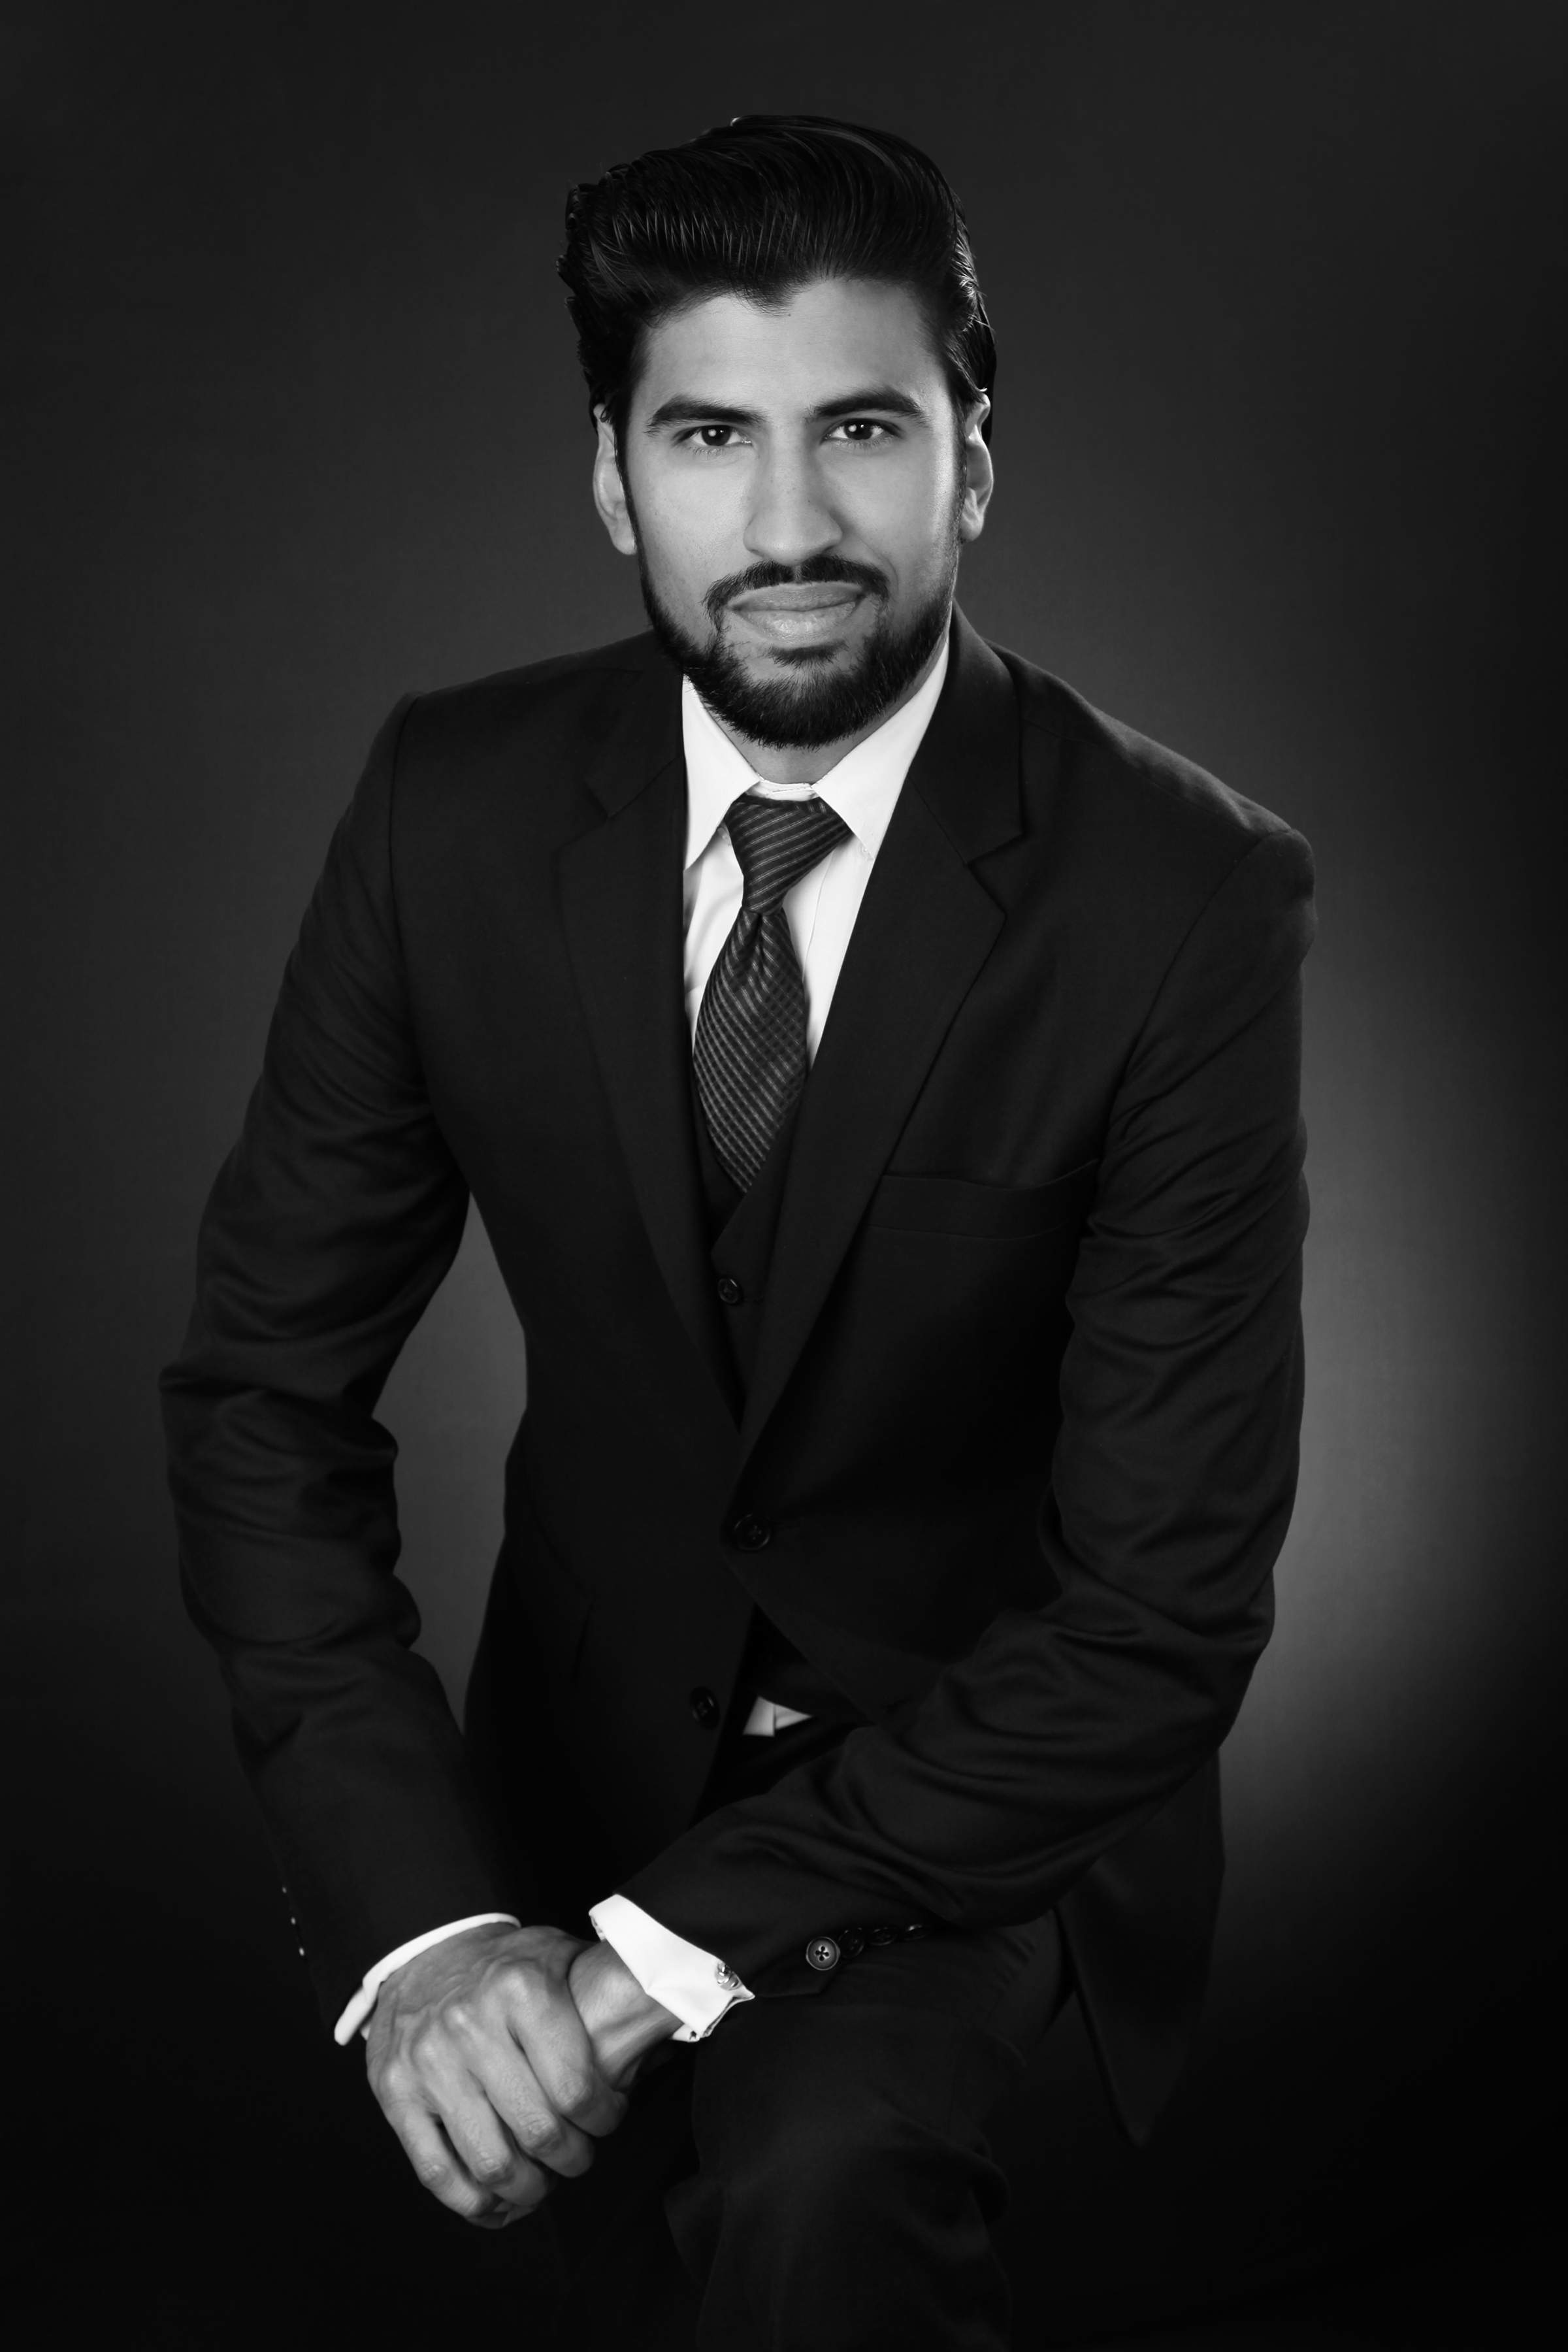 AFZAL HASAN - Corporate Development and General Counsel at CannRoyalty